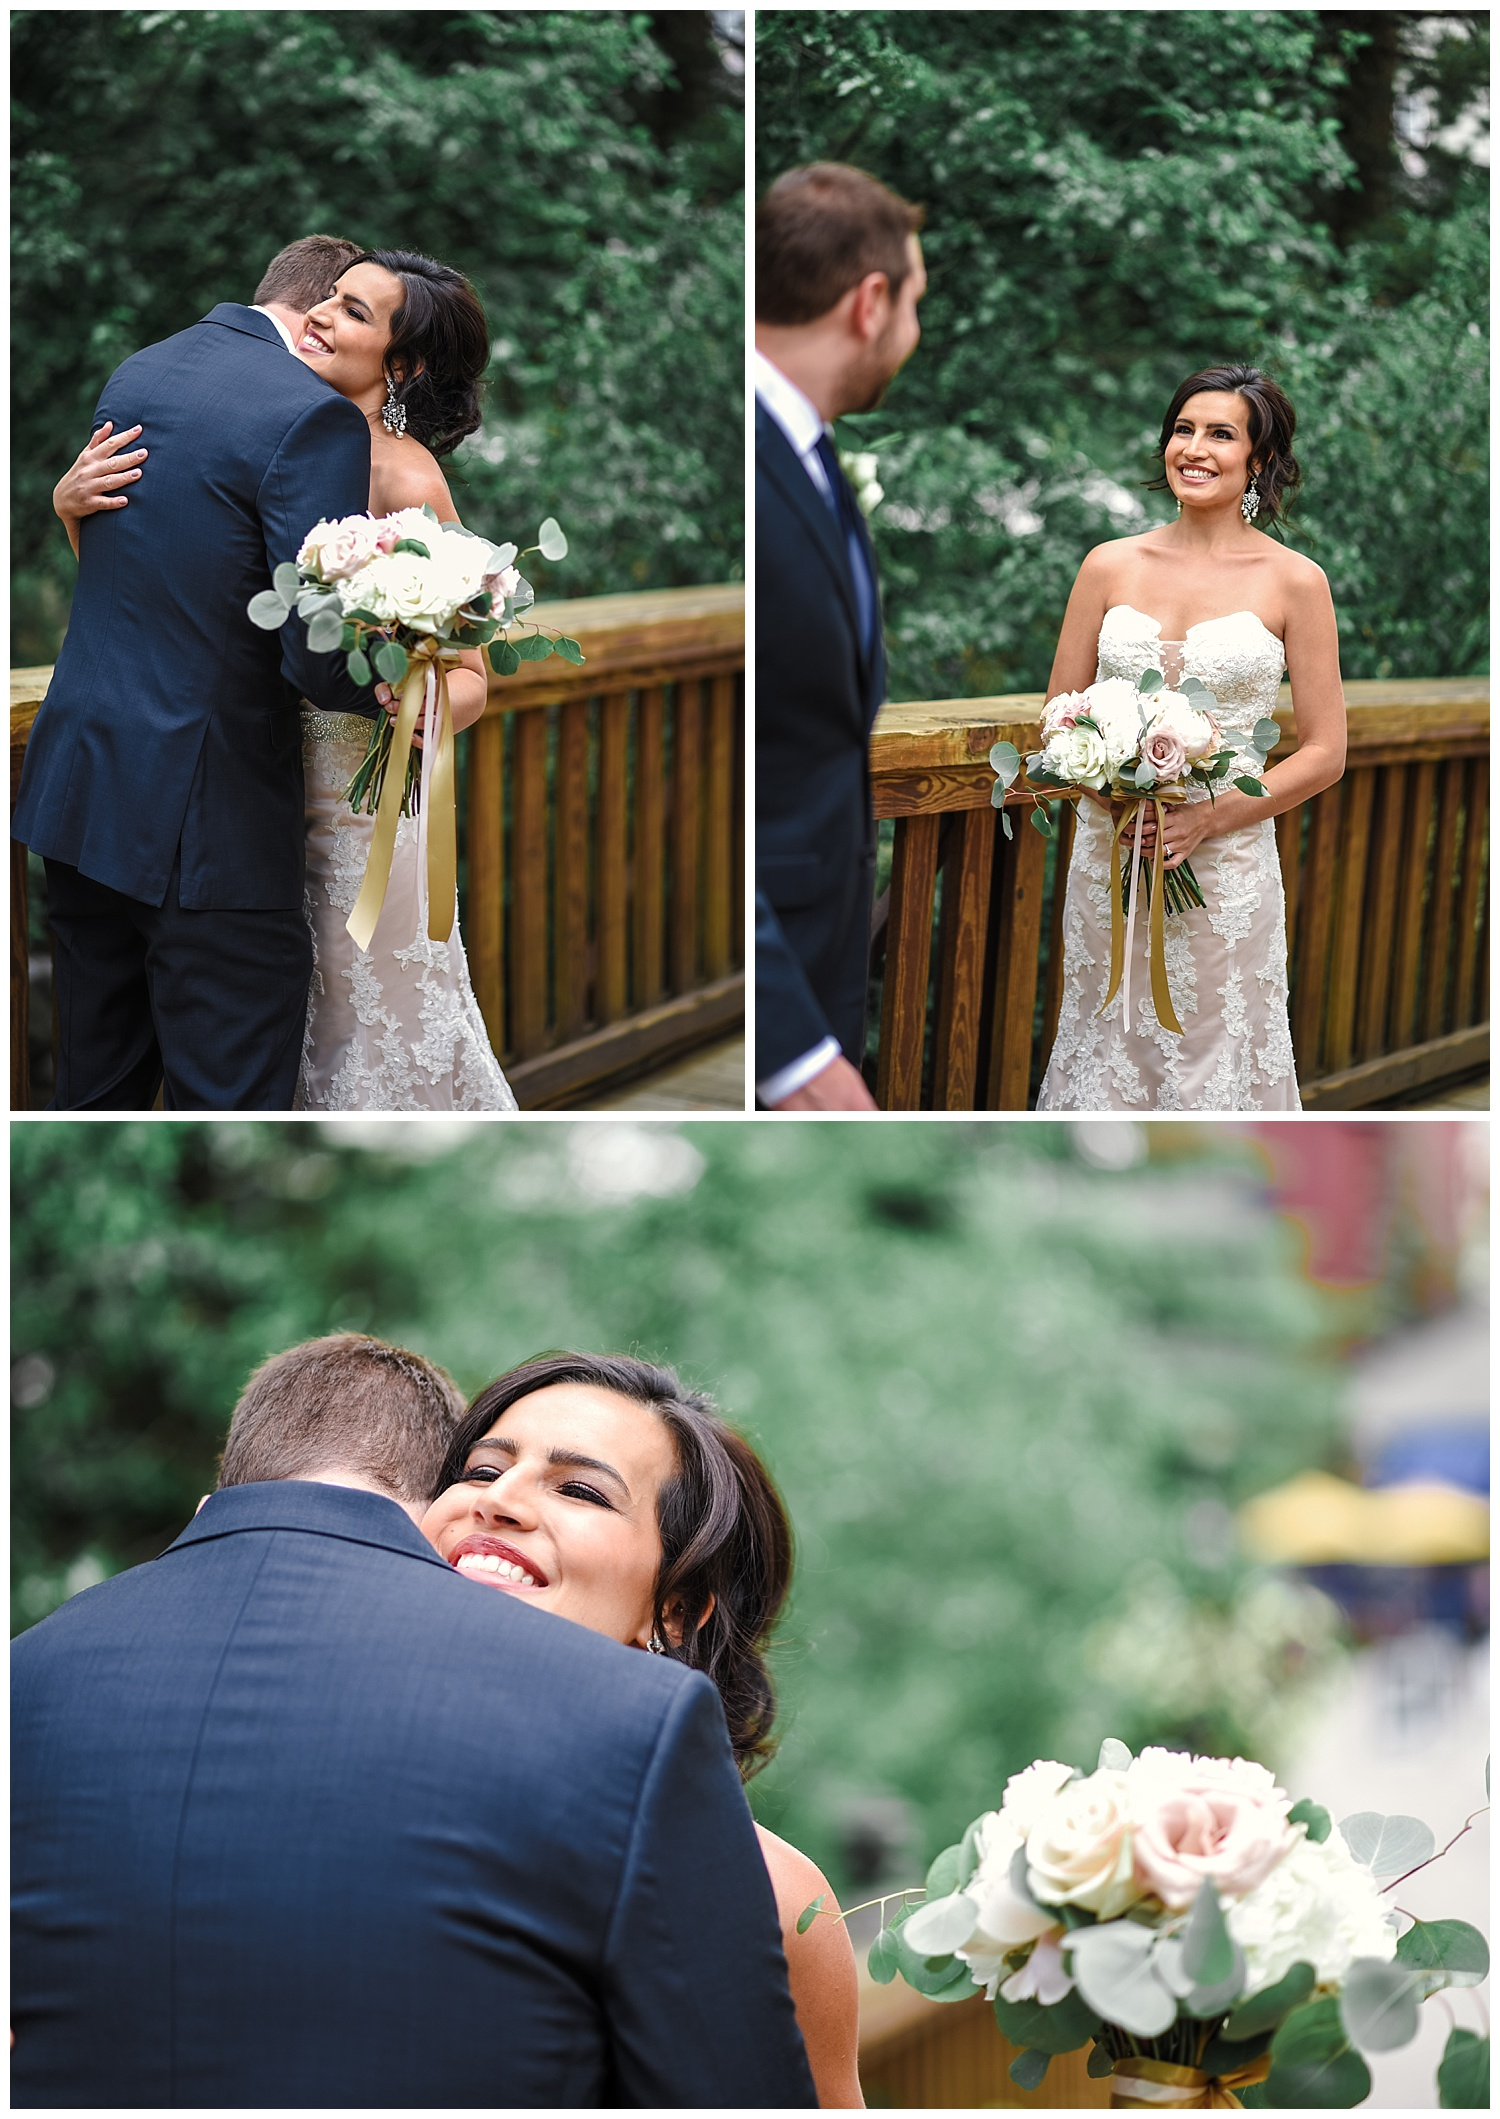 bride and groom first look at keystone resort in colorado, colorado wedding photographer, denver wedding photographer, intimate colorado wedding photographer, rocky mountain wedding photographer